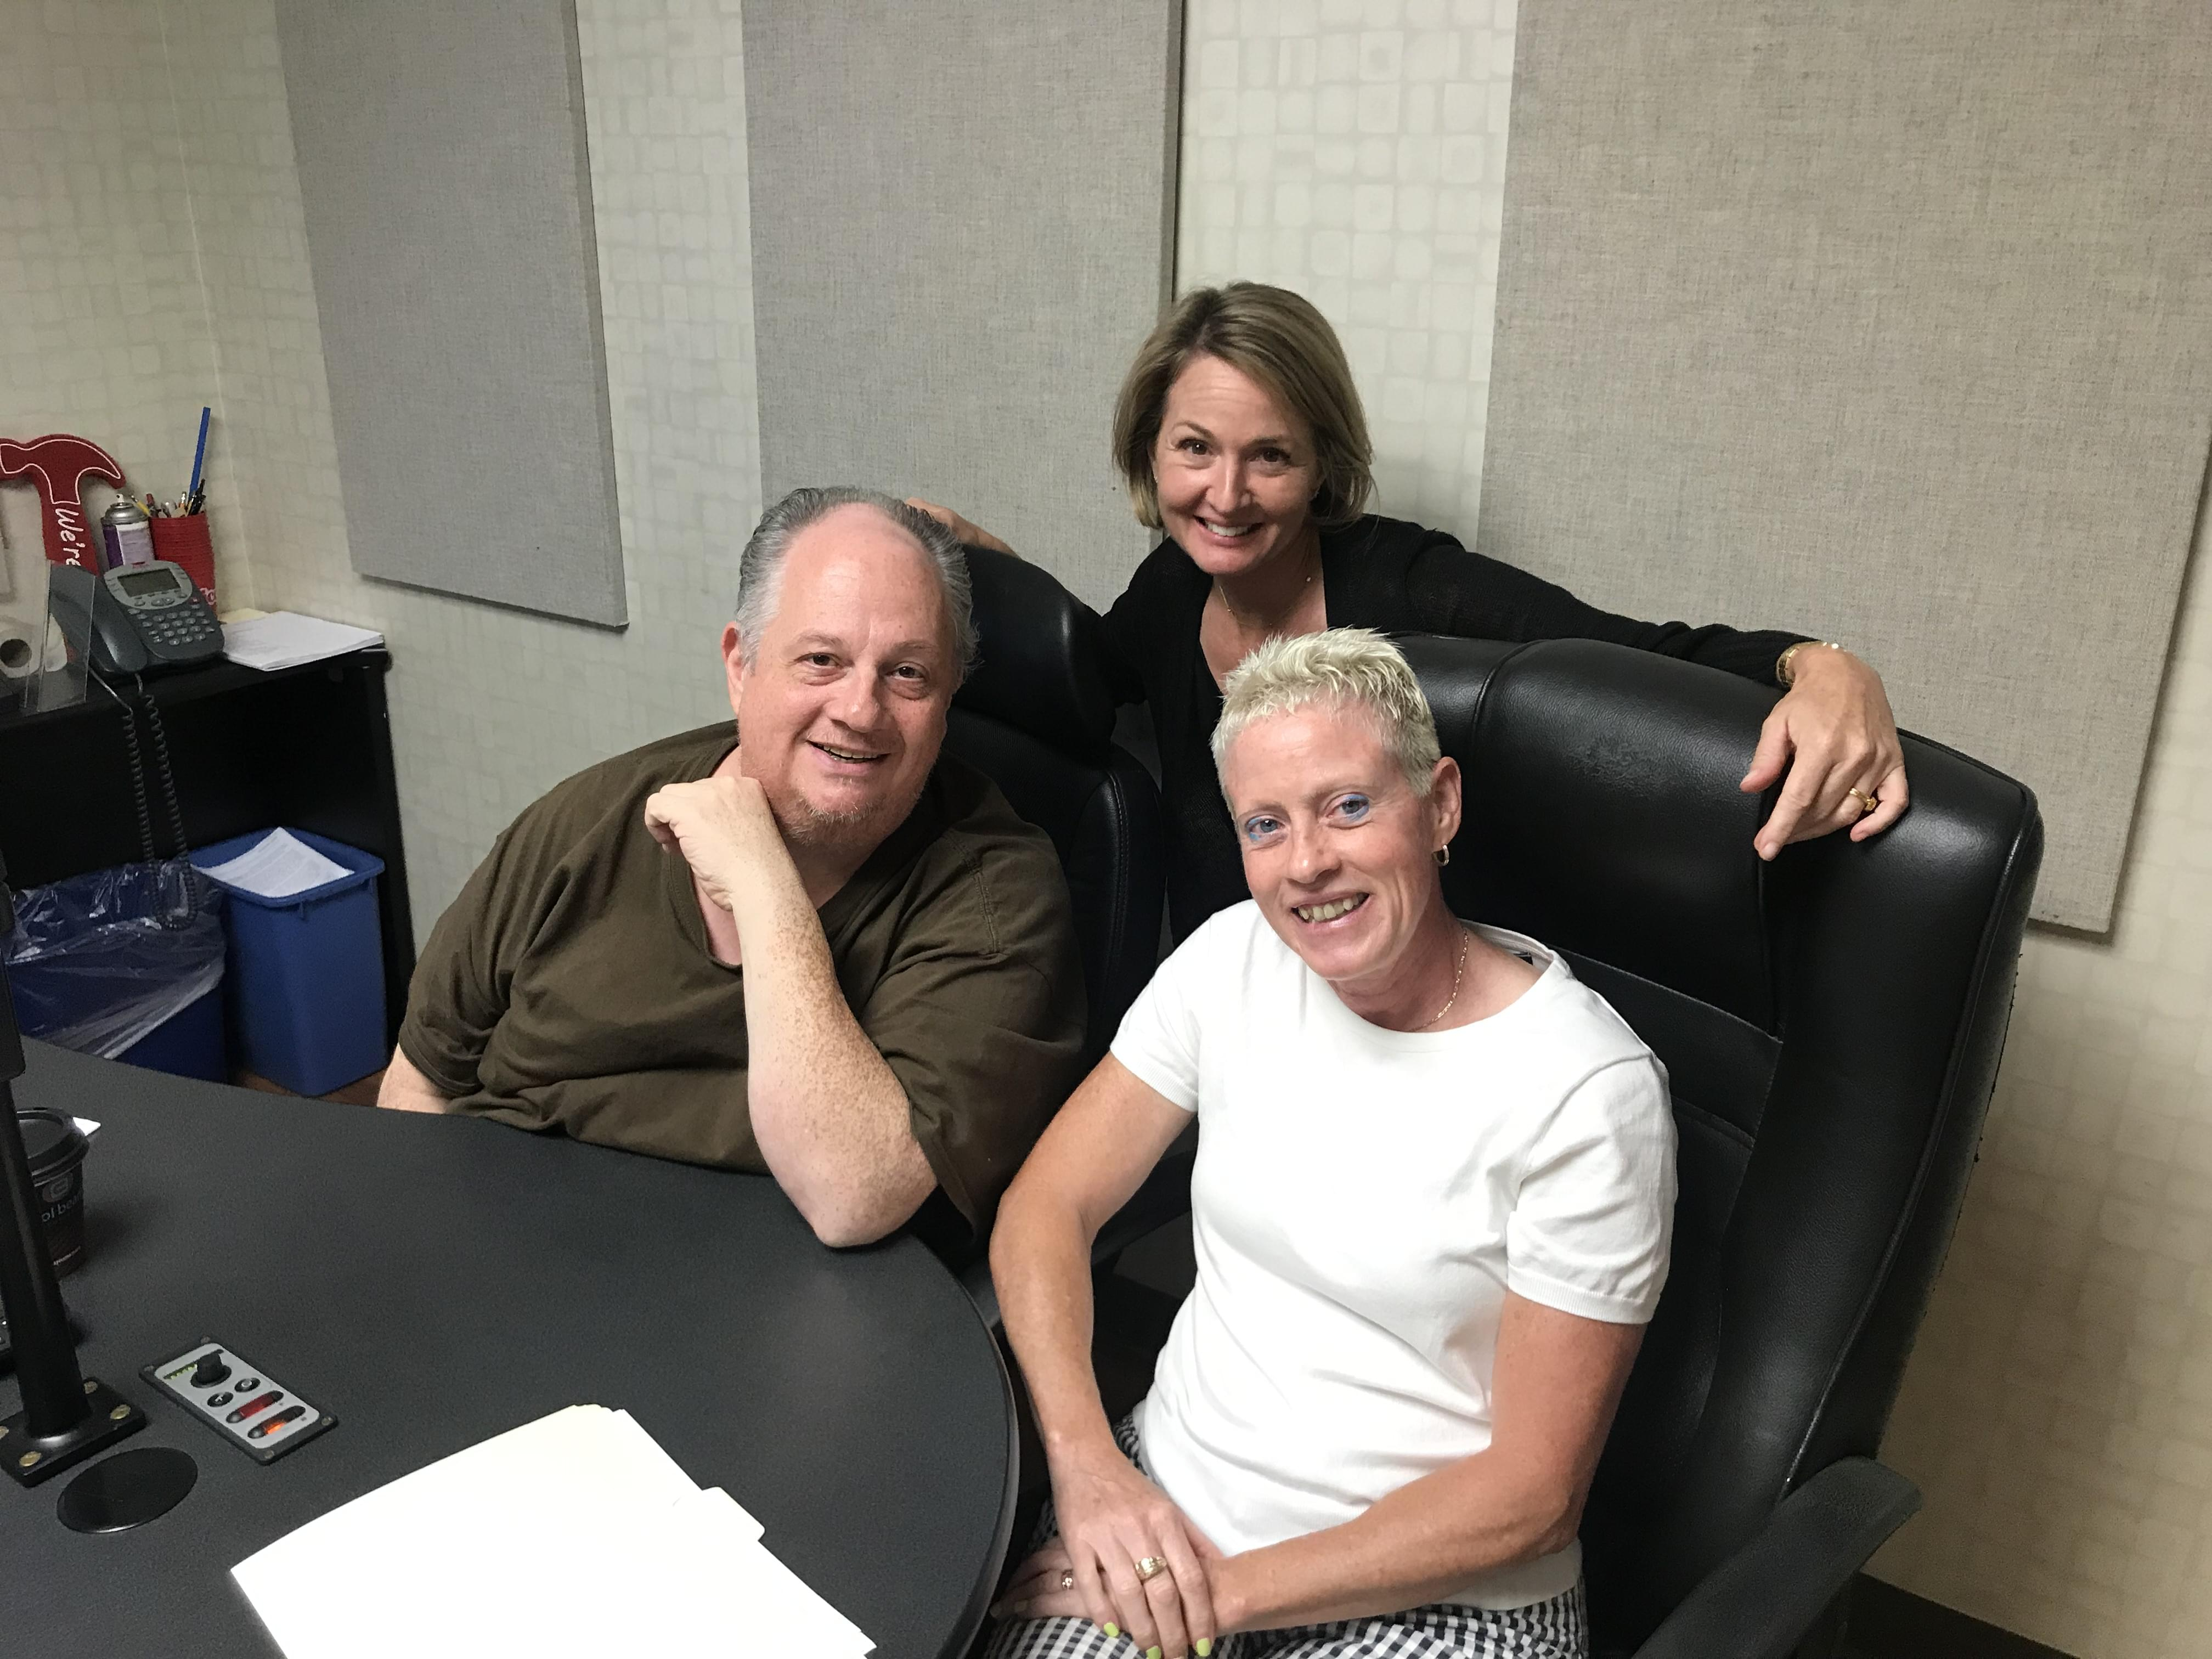 Connecticut Today with Paul Pacelli: Fourth of July around the Corner, Fairfield Affordable Housing, Callers Chime In, Tweeting and Watching TV.